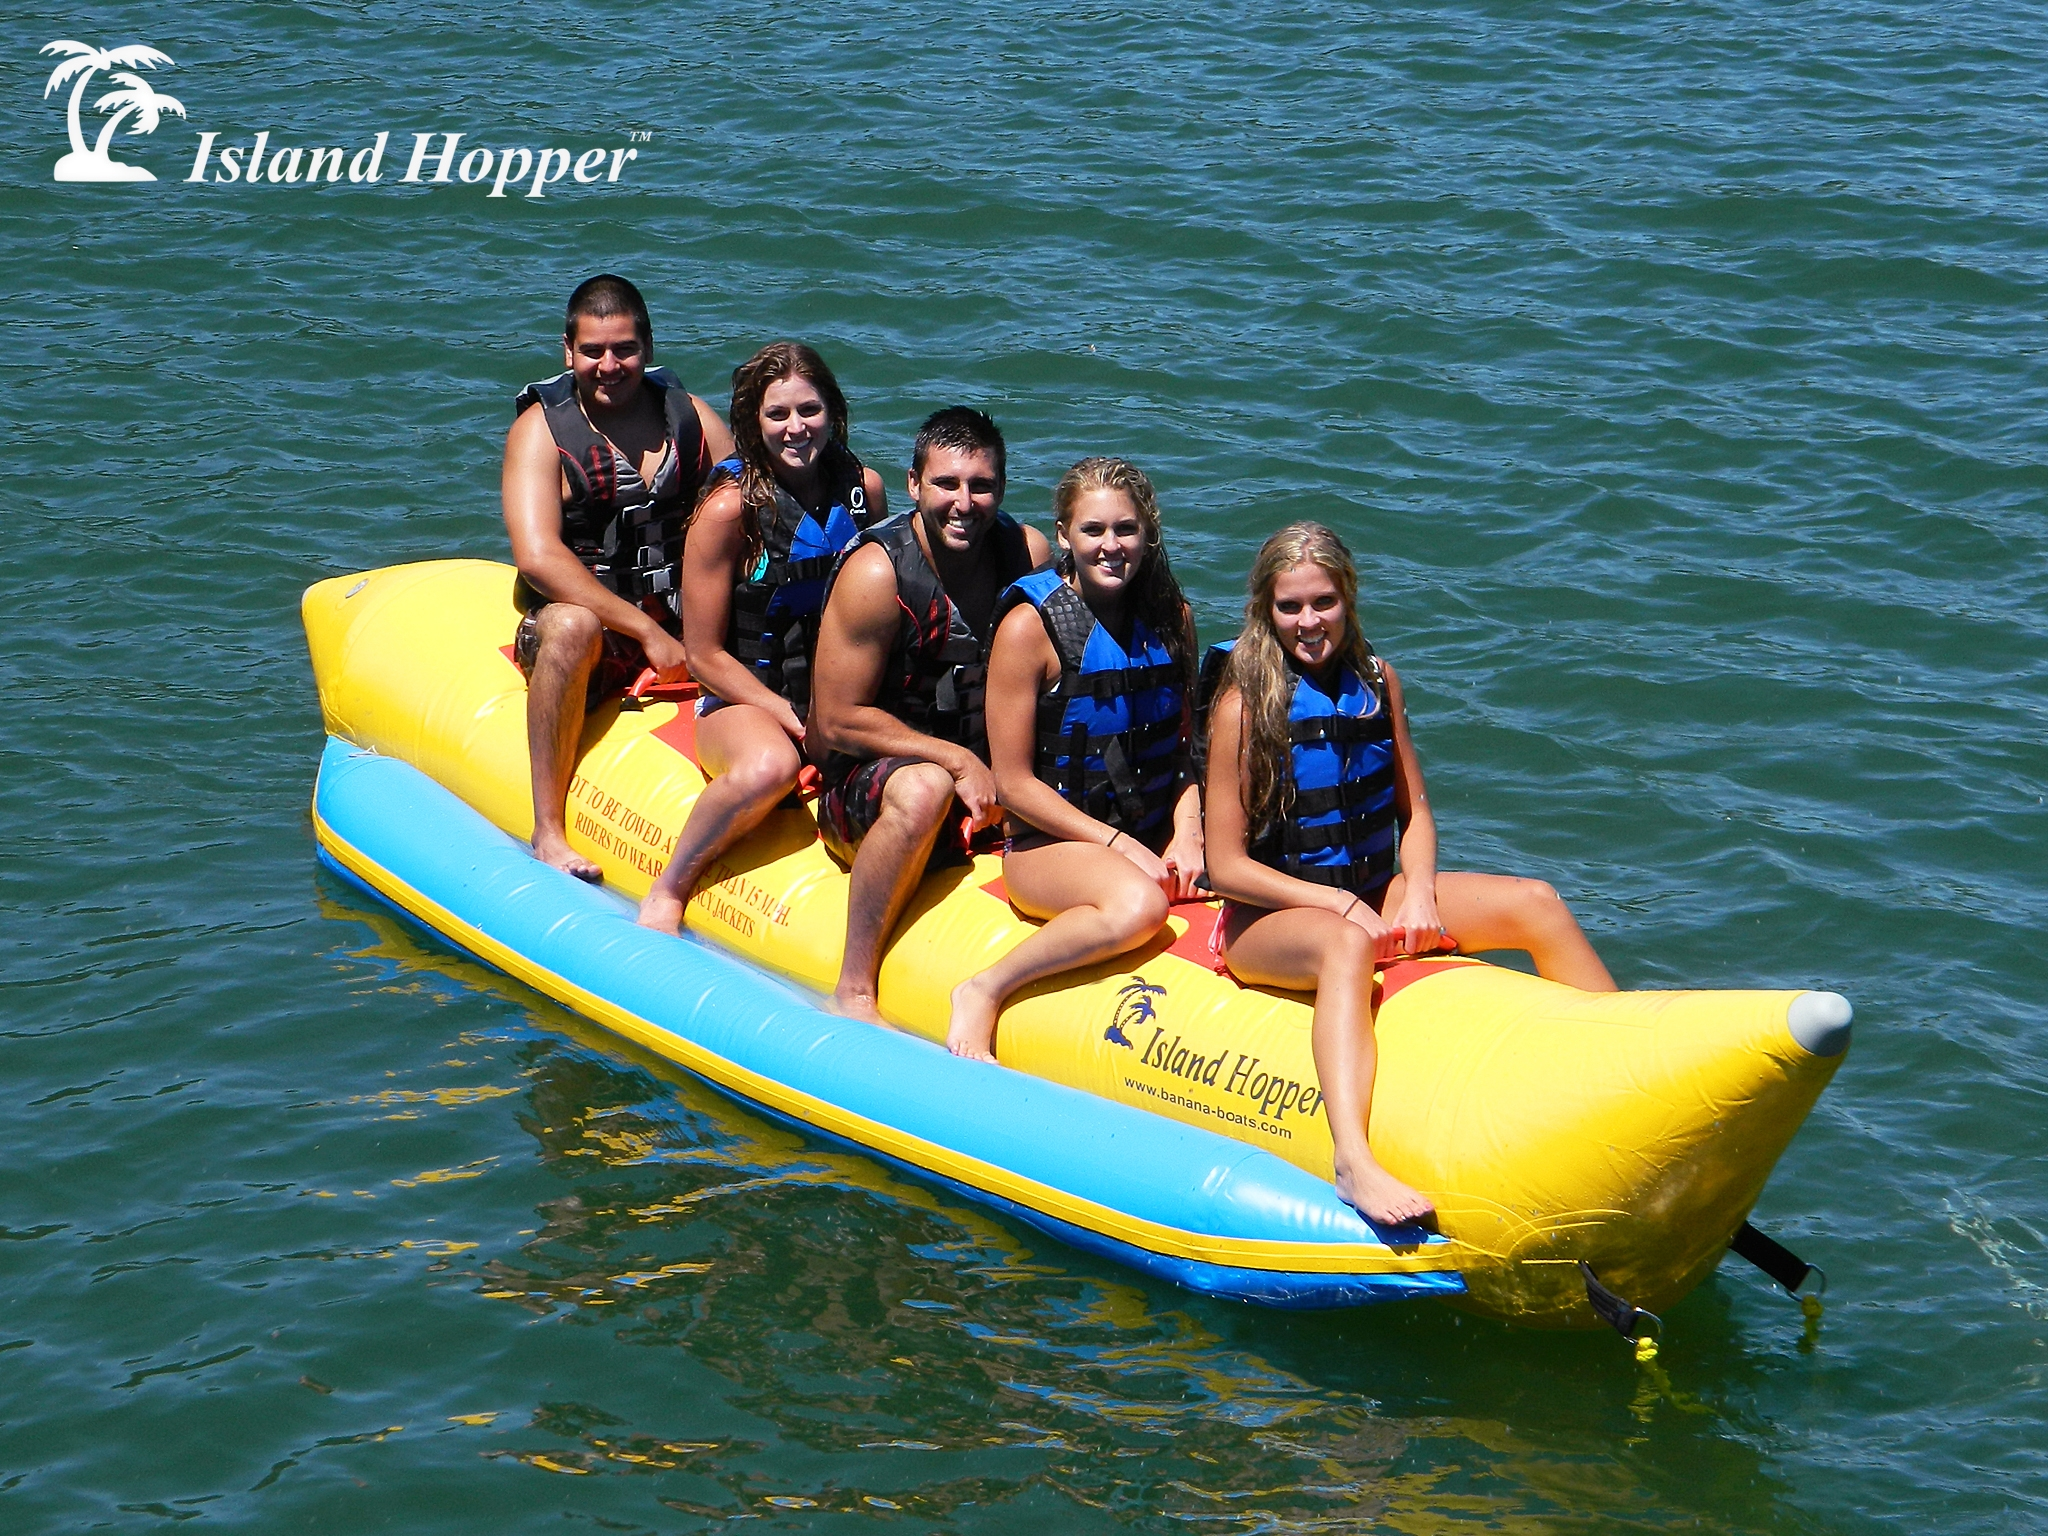 Heavy Recreational 5 Passenger Banana Boat Island Hopper Inflatable Towing Harness Person